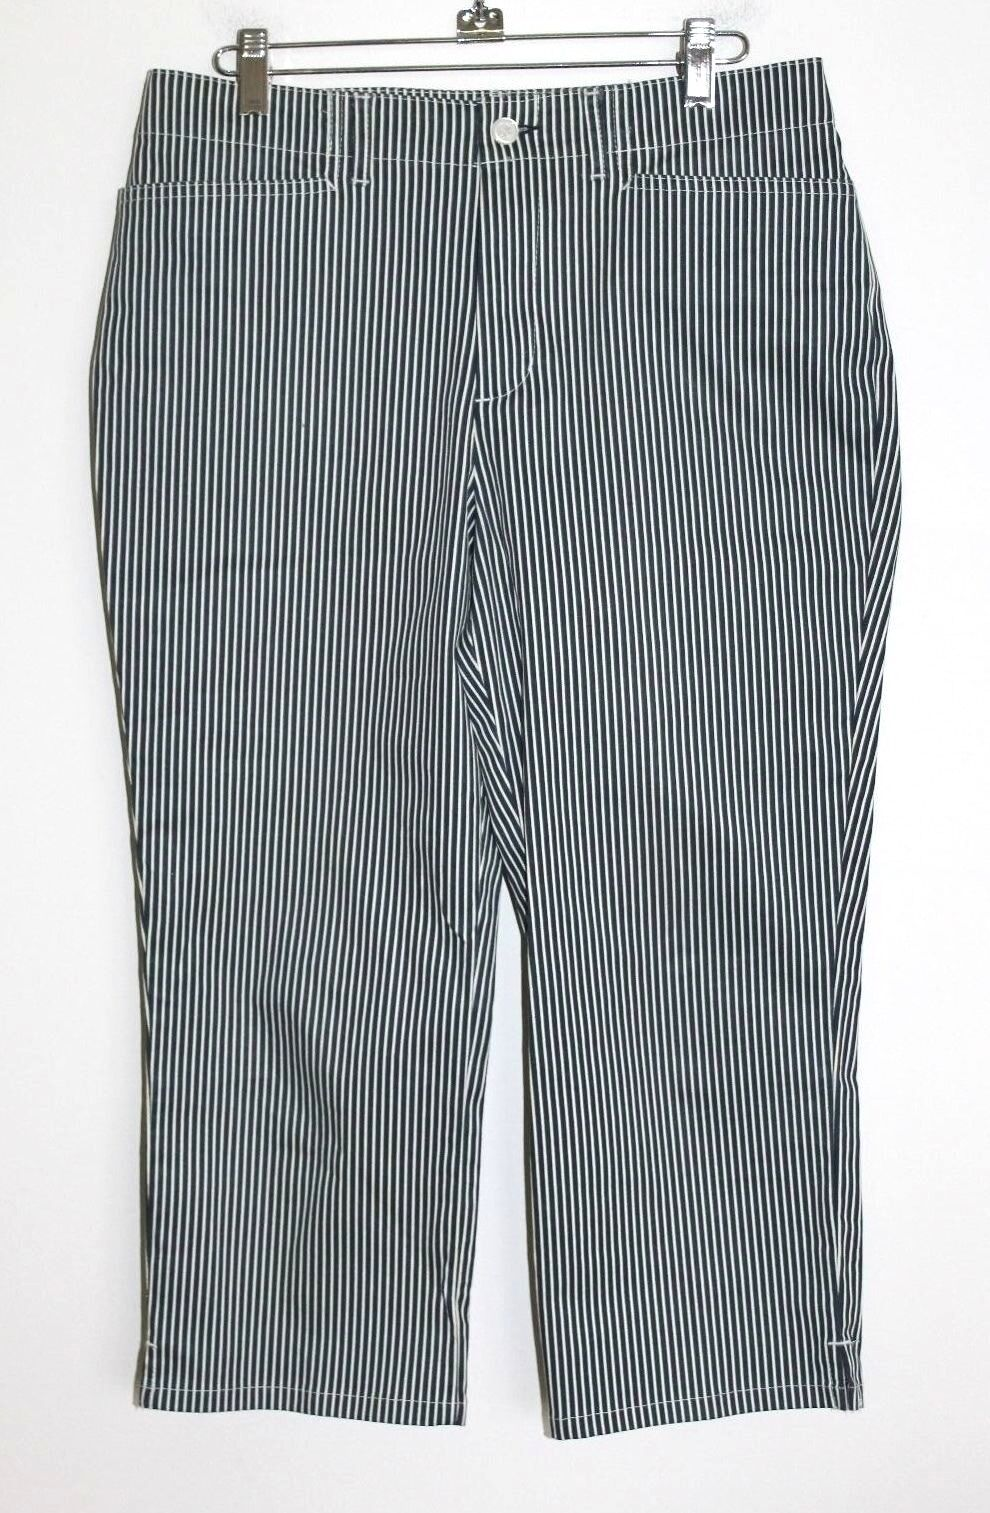 Chaps - 4 (S) - NWOT - Navy bluee Striped 98% Cotton Crop Pants